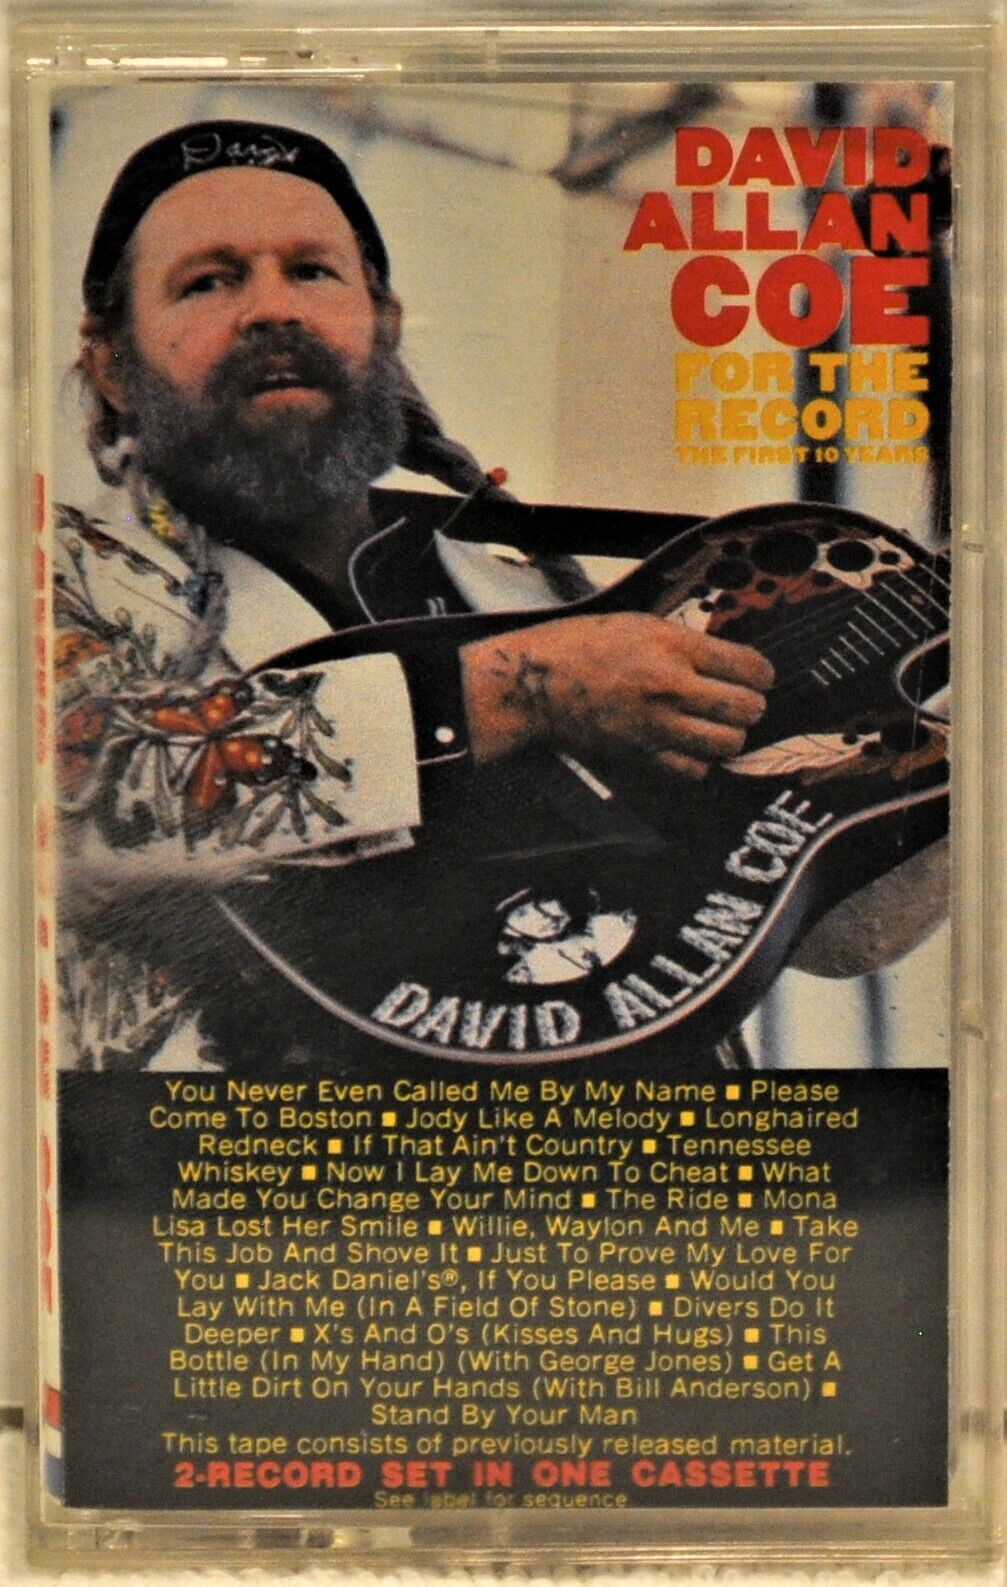 DAVID ALLAN COE For The Record The First 10 Years Cassette Columbia CGT39585 - $10.99